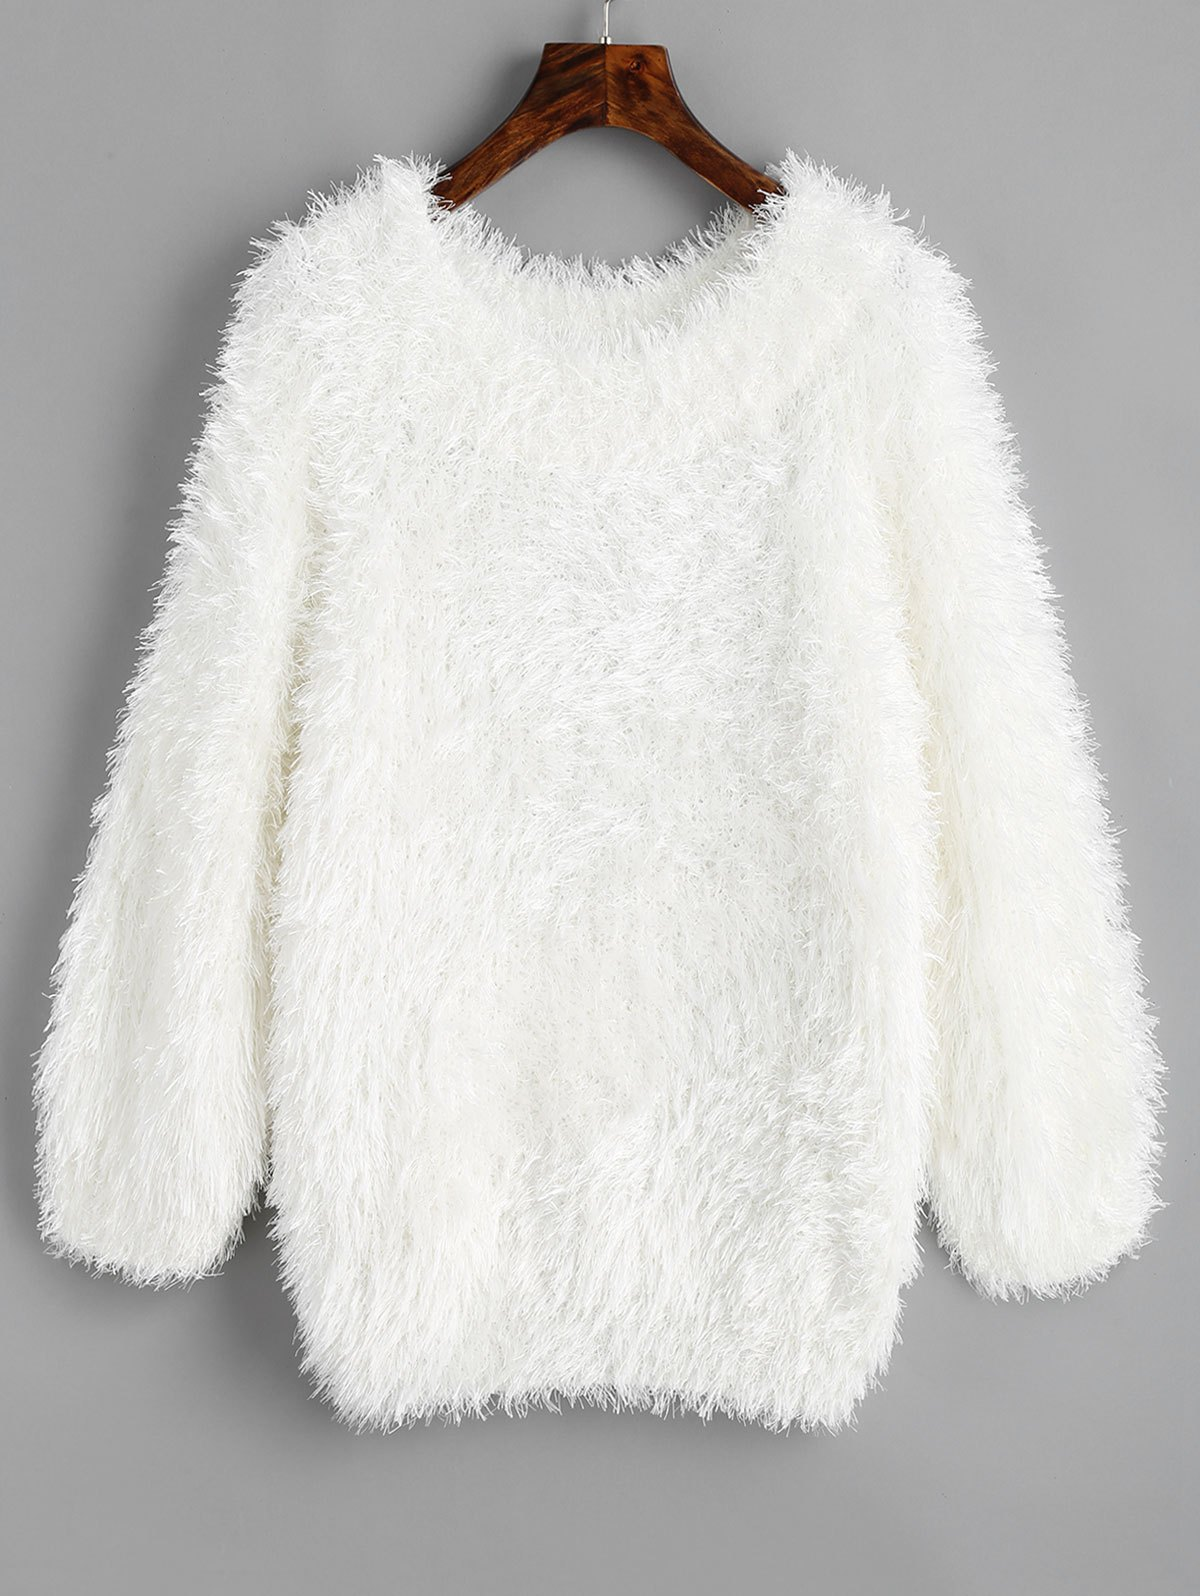 Textured Raglan Sleeve Pullover Sweater - WHITE ONE SIZE